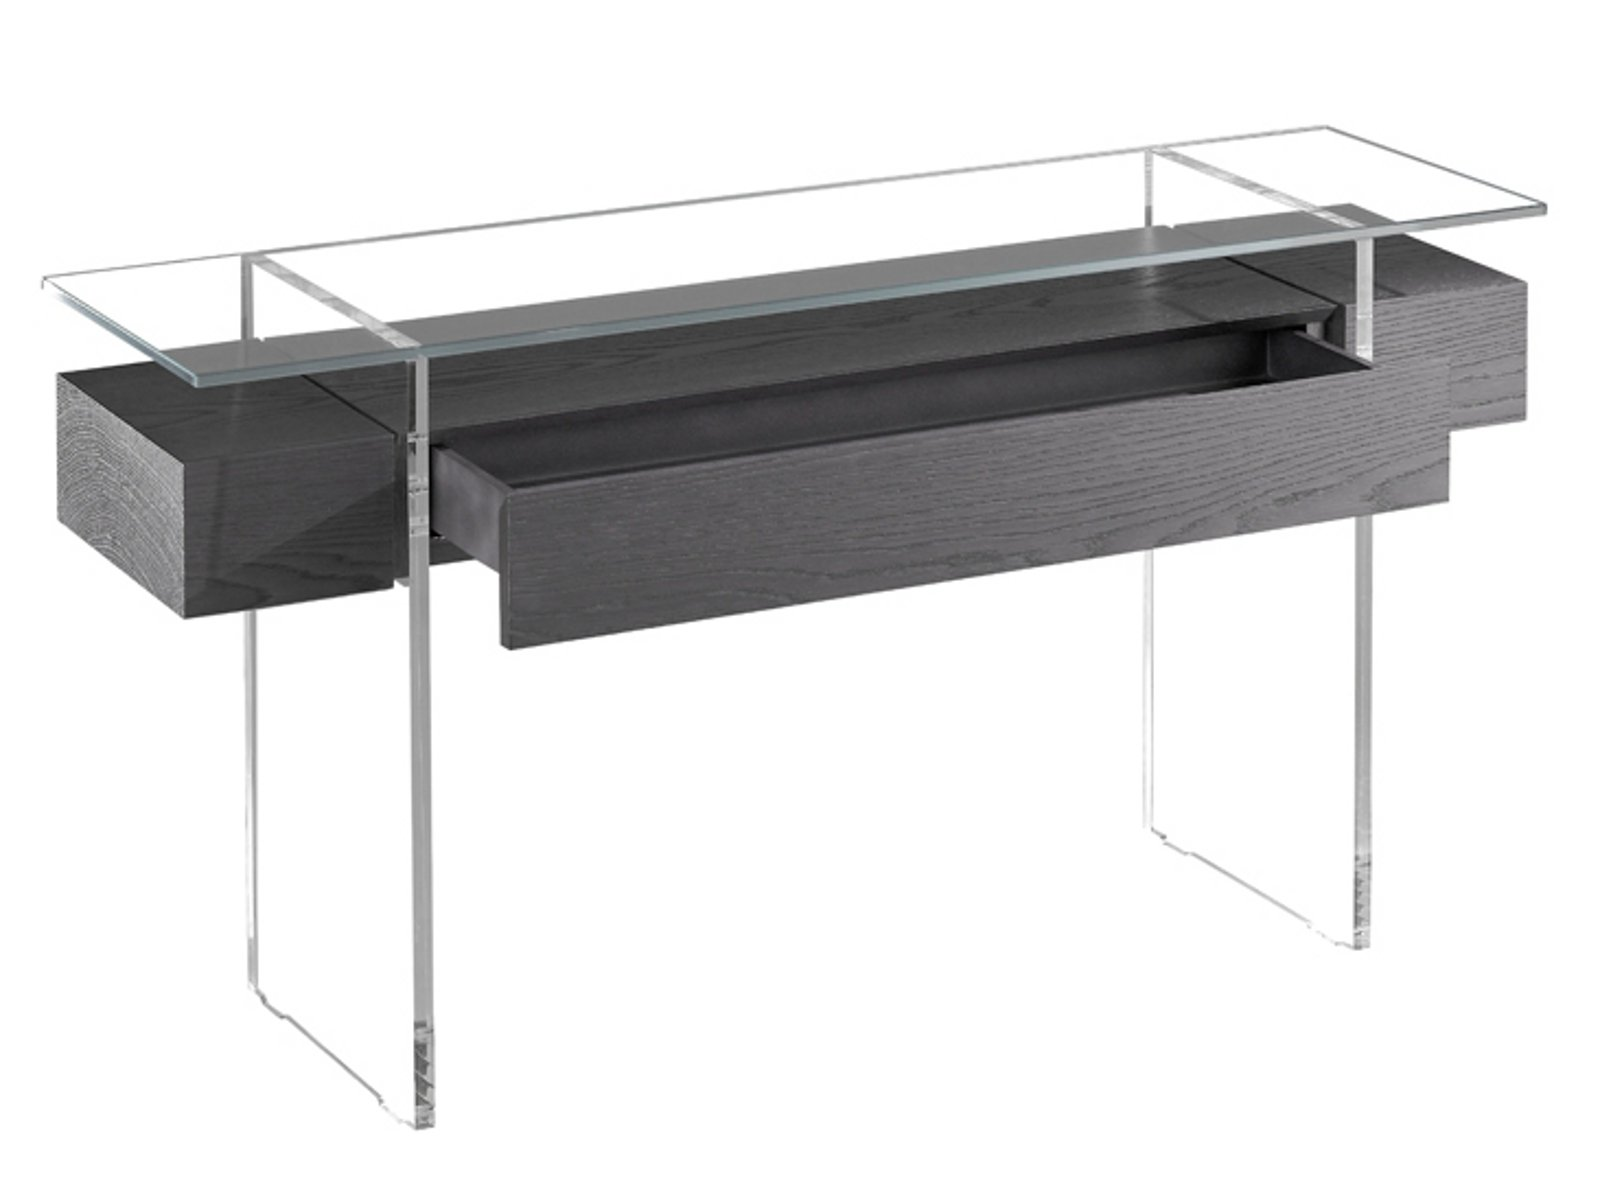 smos table console by la maison turrini design erwan peron. Black Bedroom Furniture Sets. Home Design Ideas